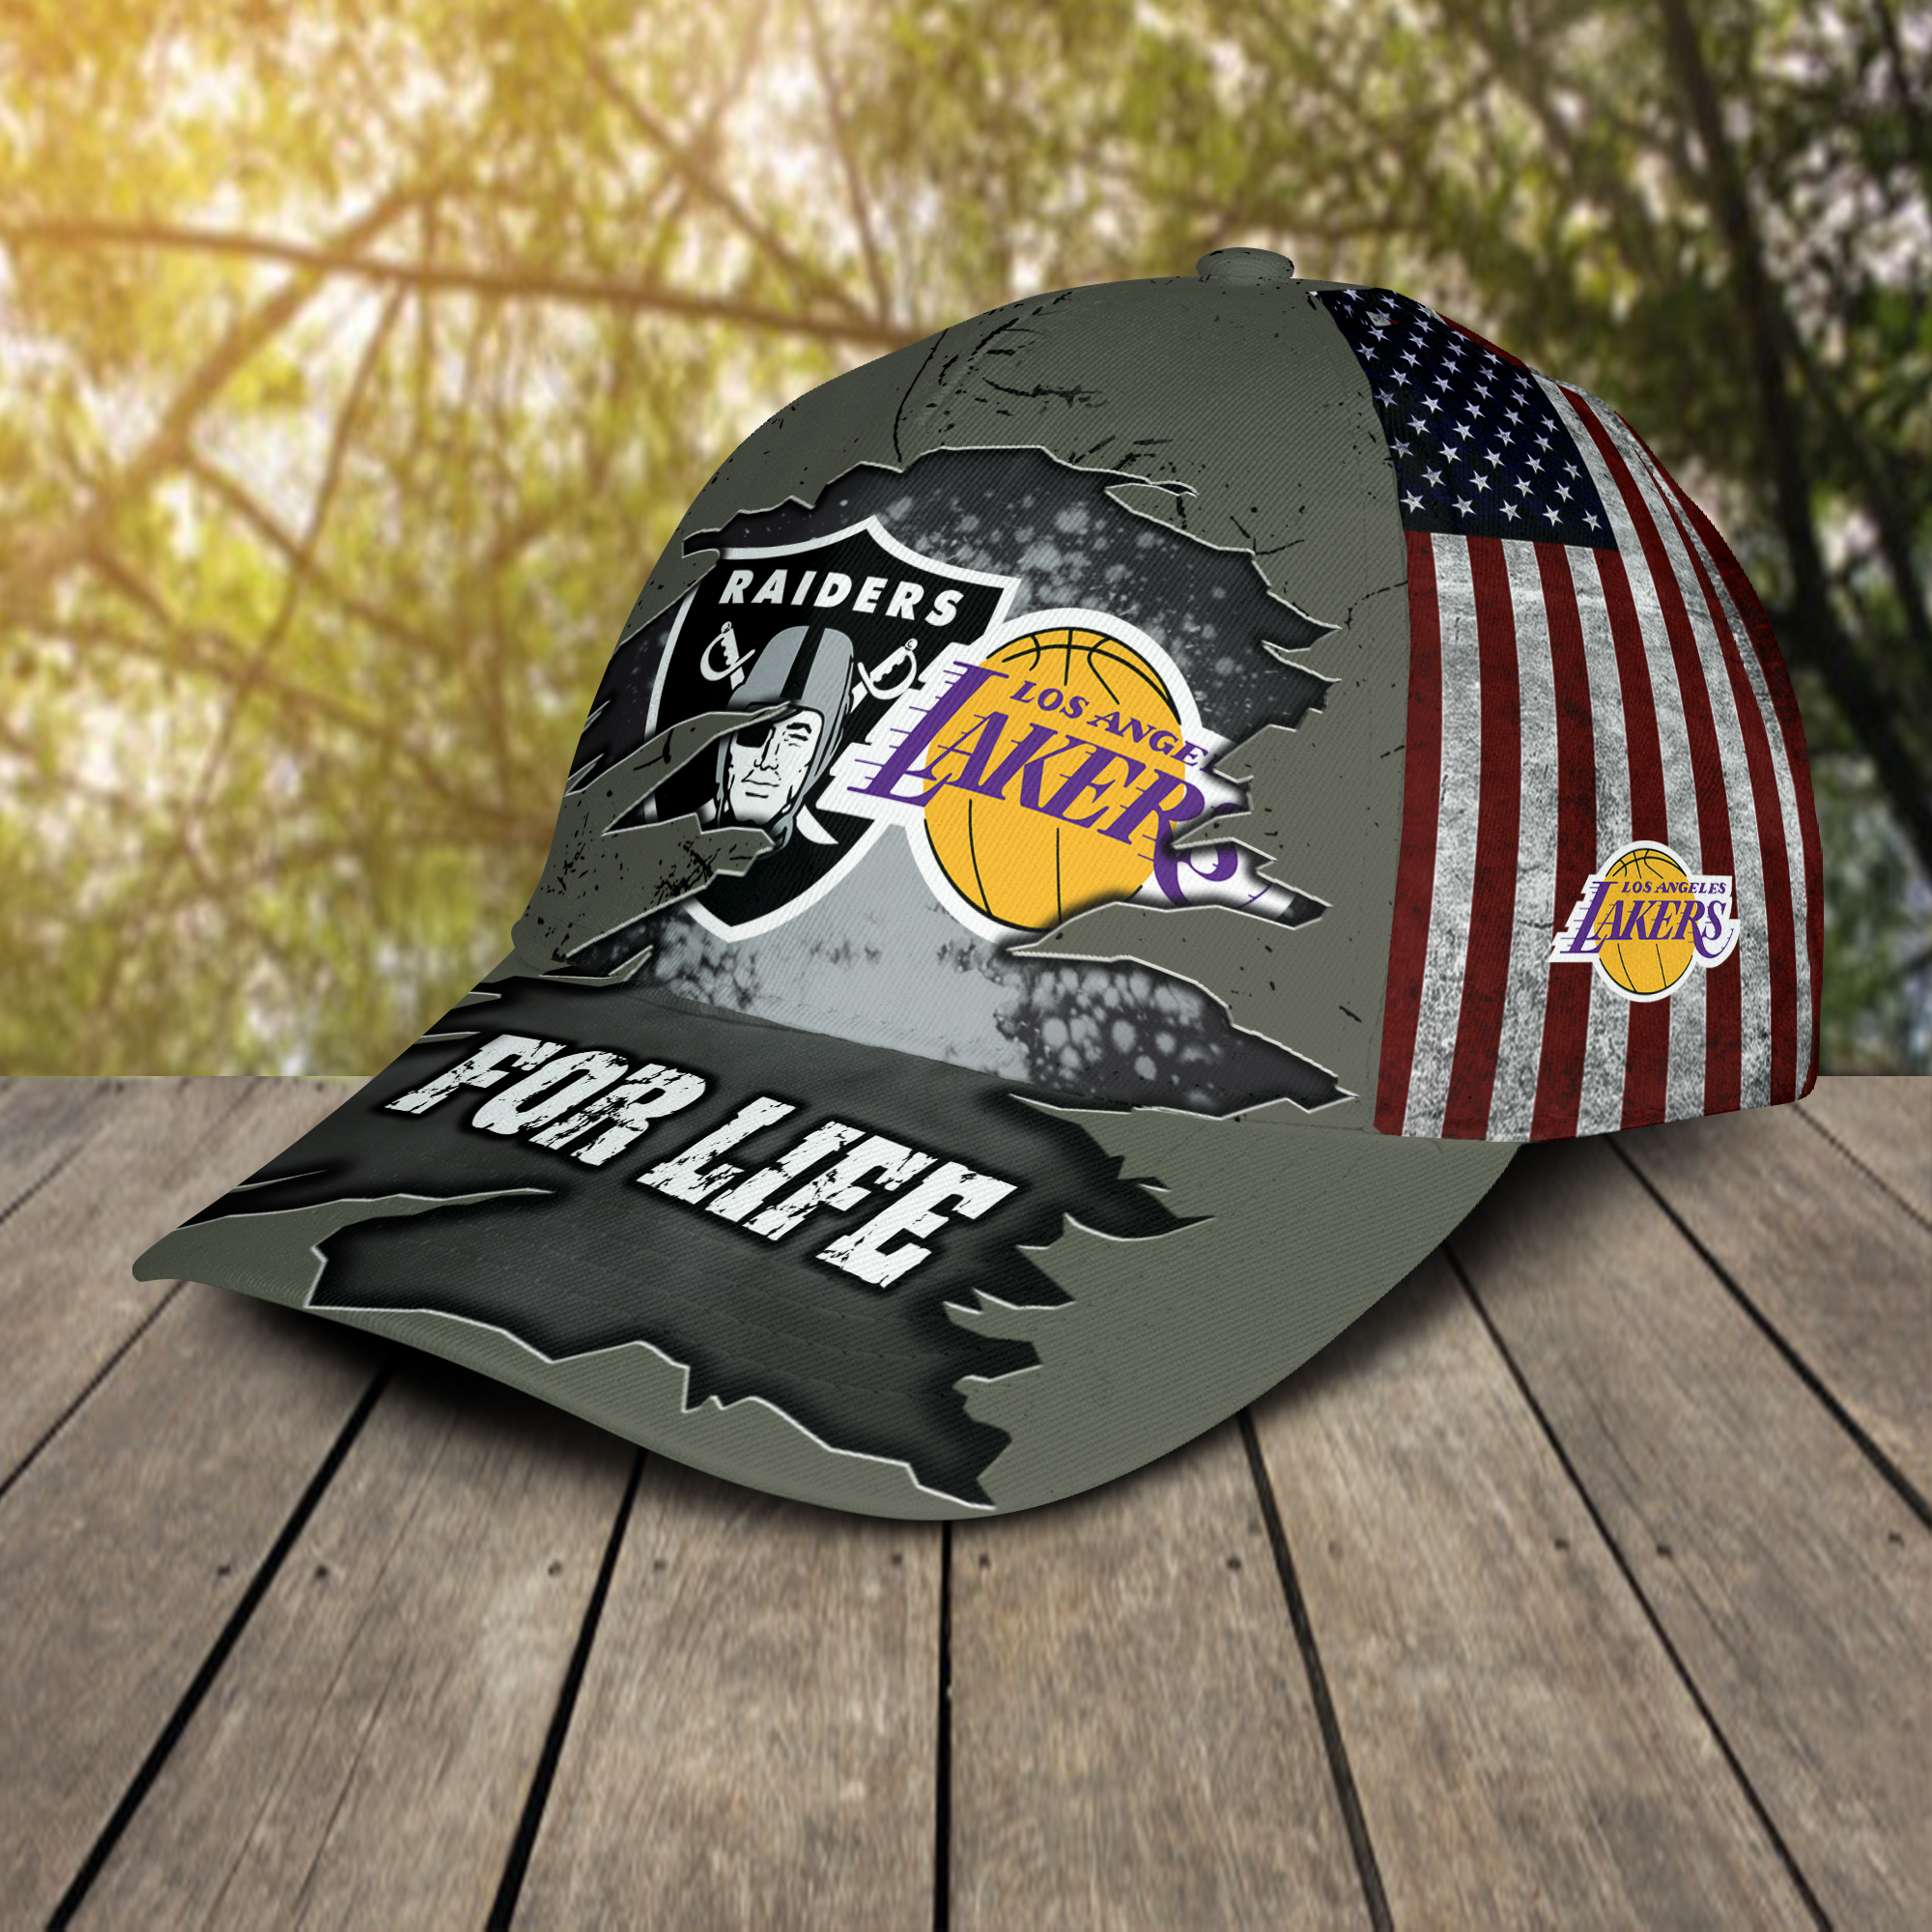 Las Vegas Raiders And Los Angeles Lakers For Life-2